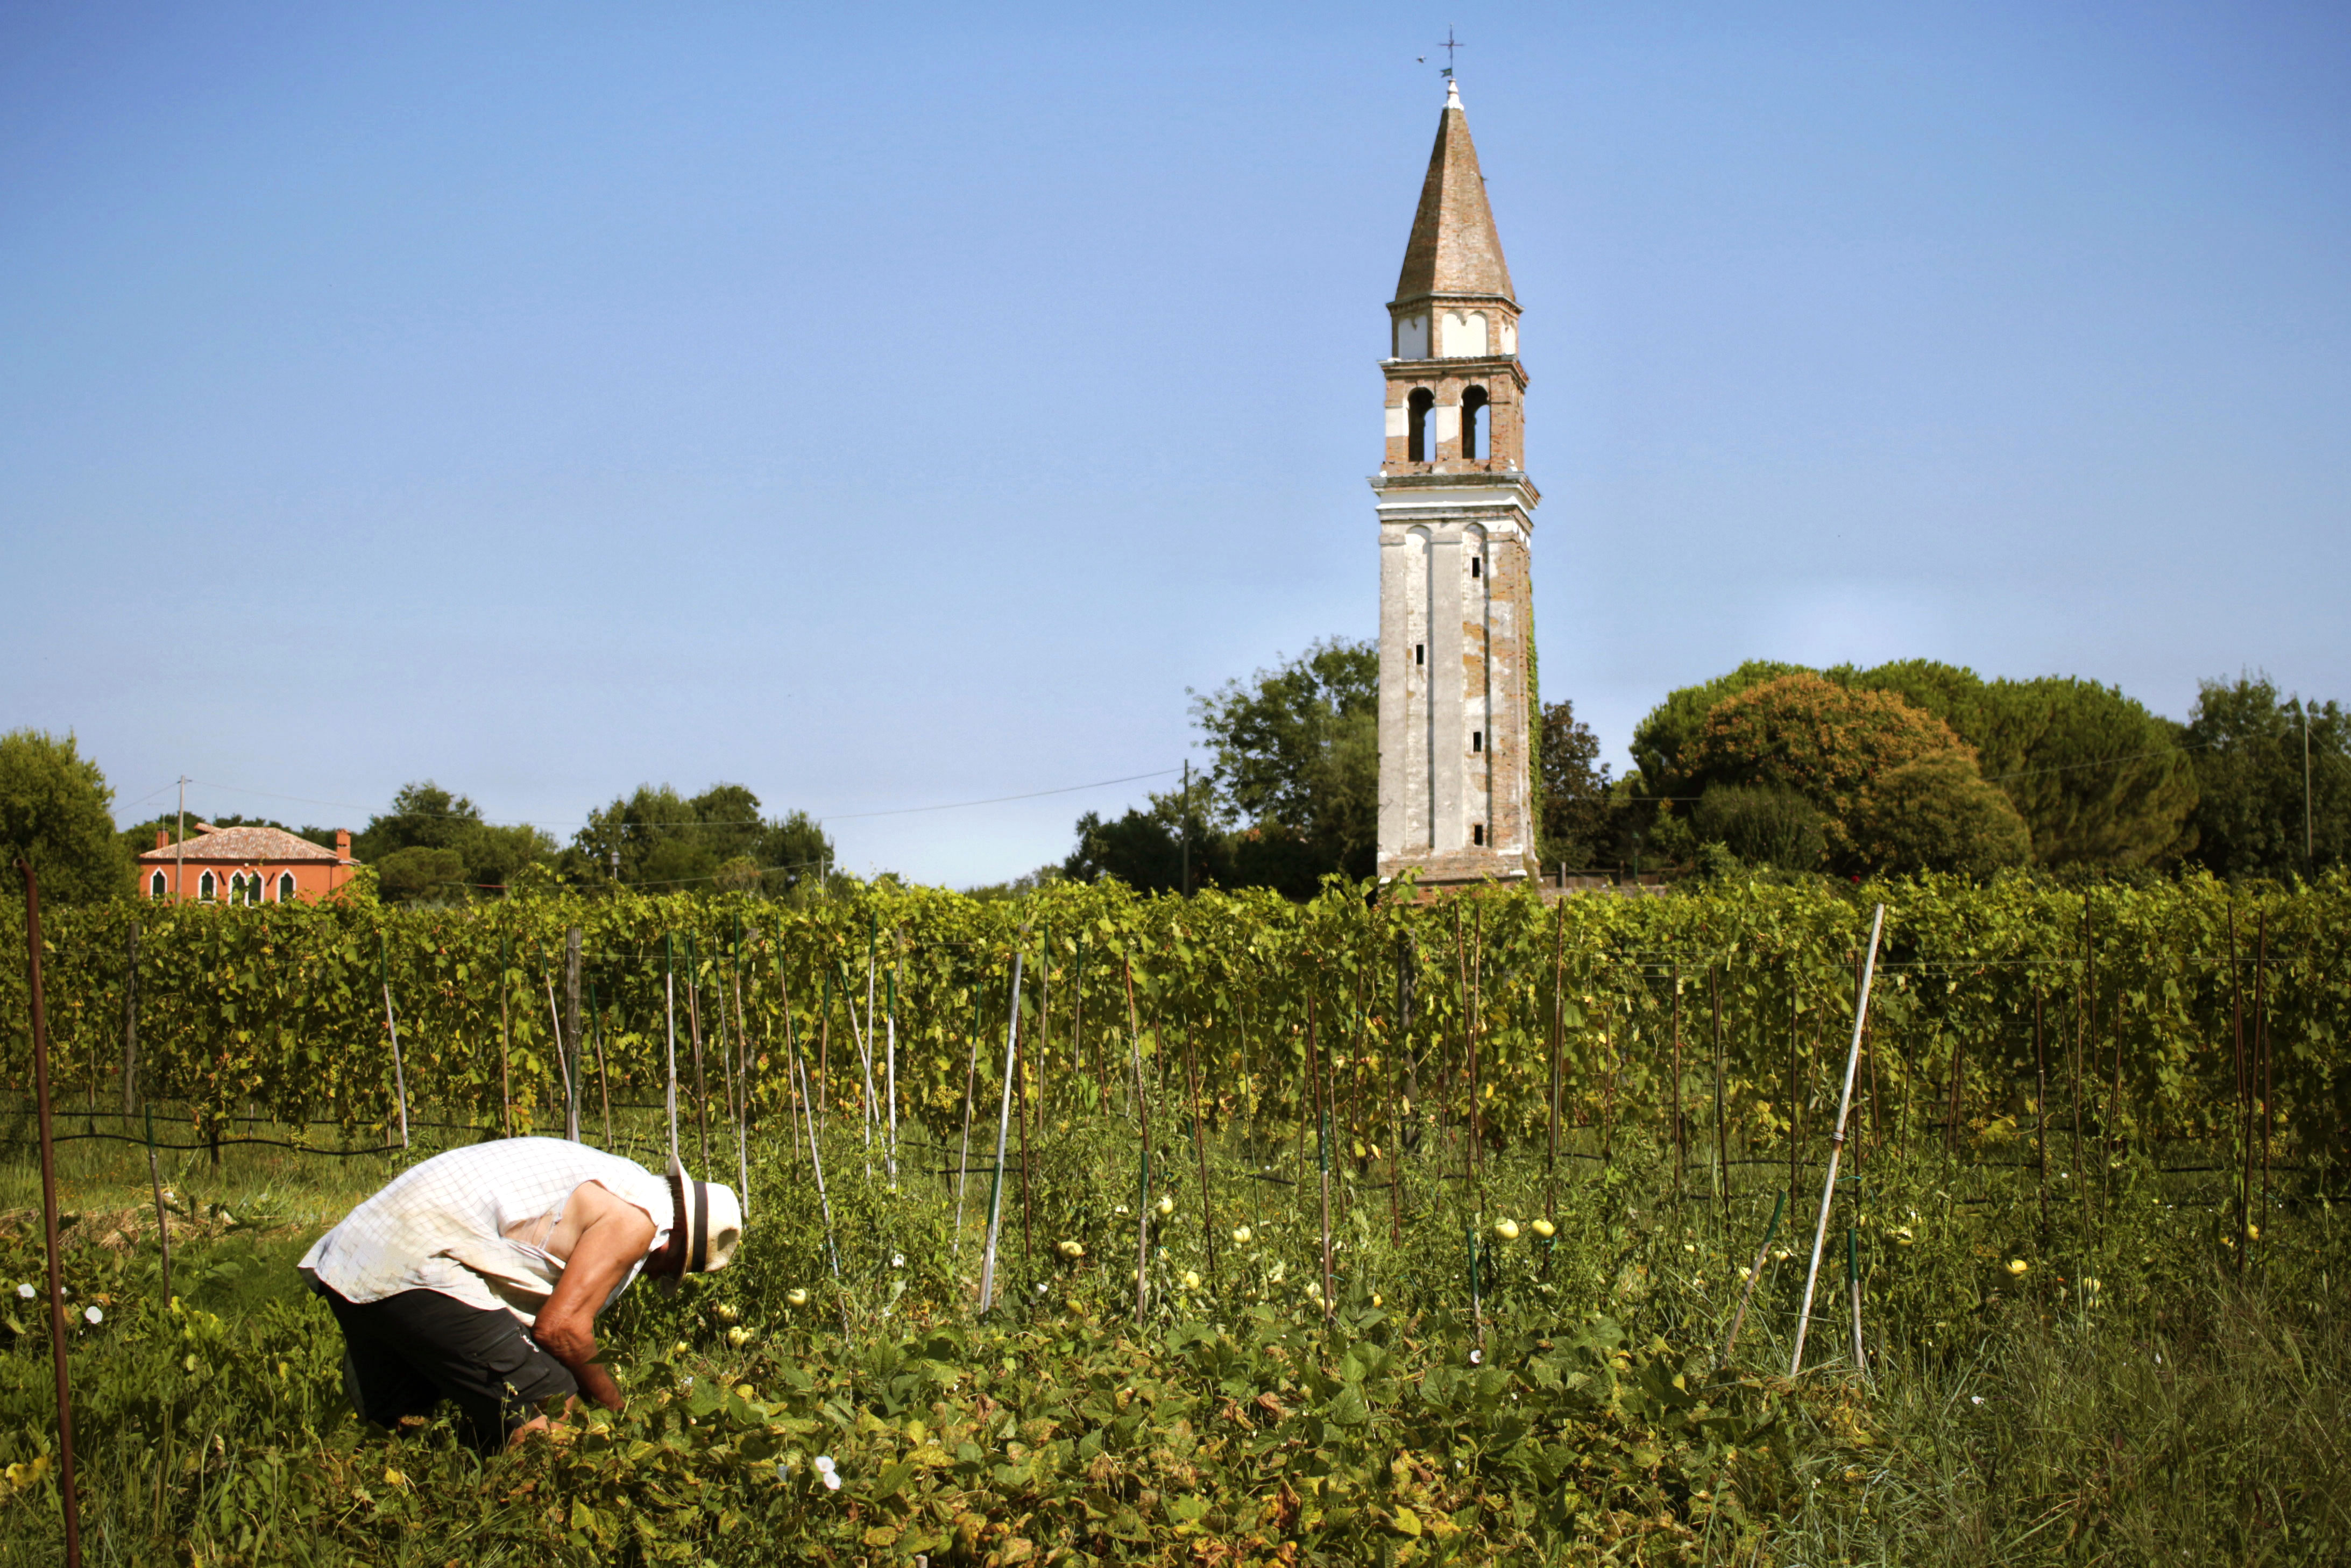 A man works in Venissa's vegetable garden yards from its vineyards.